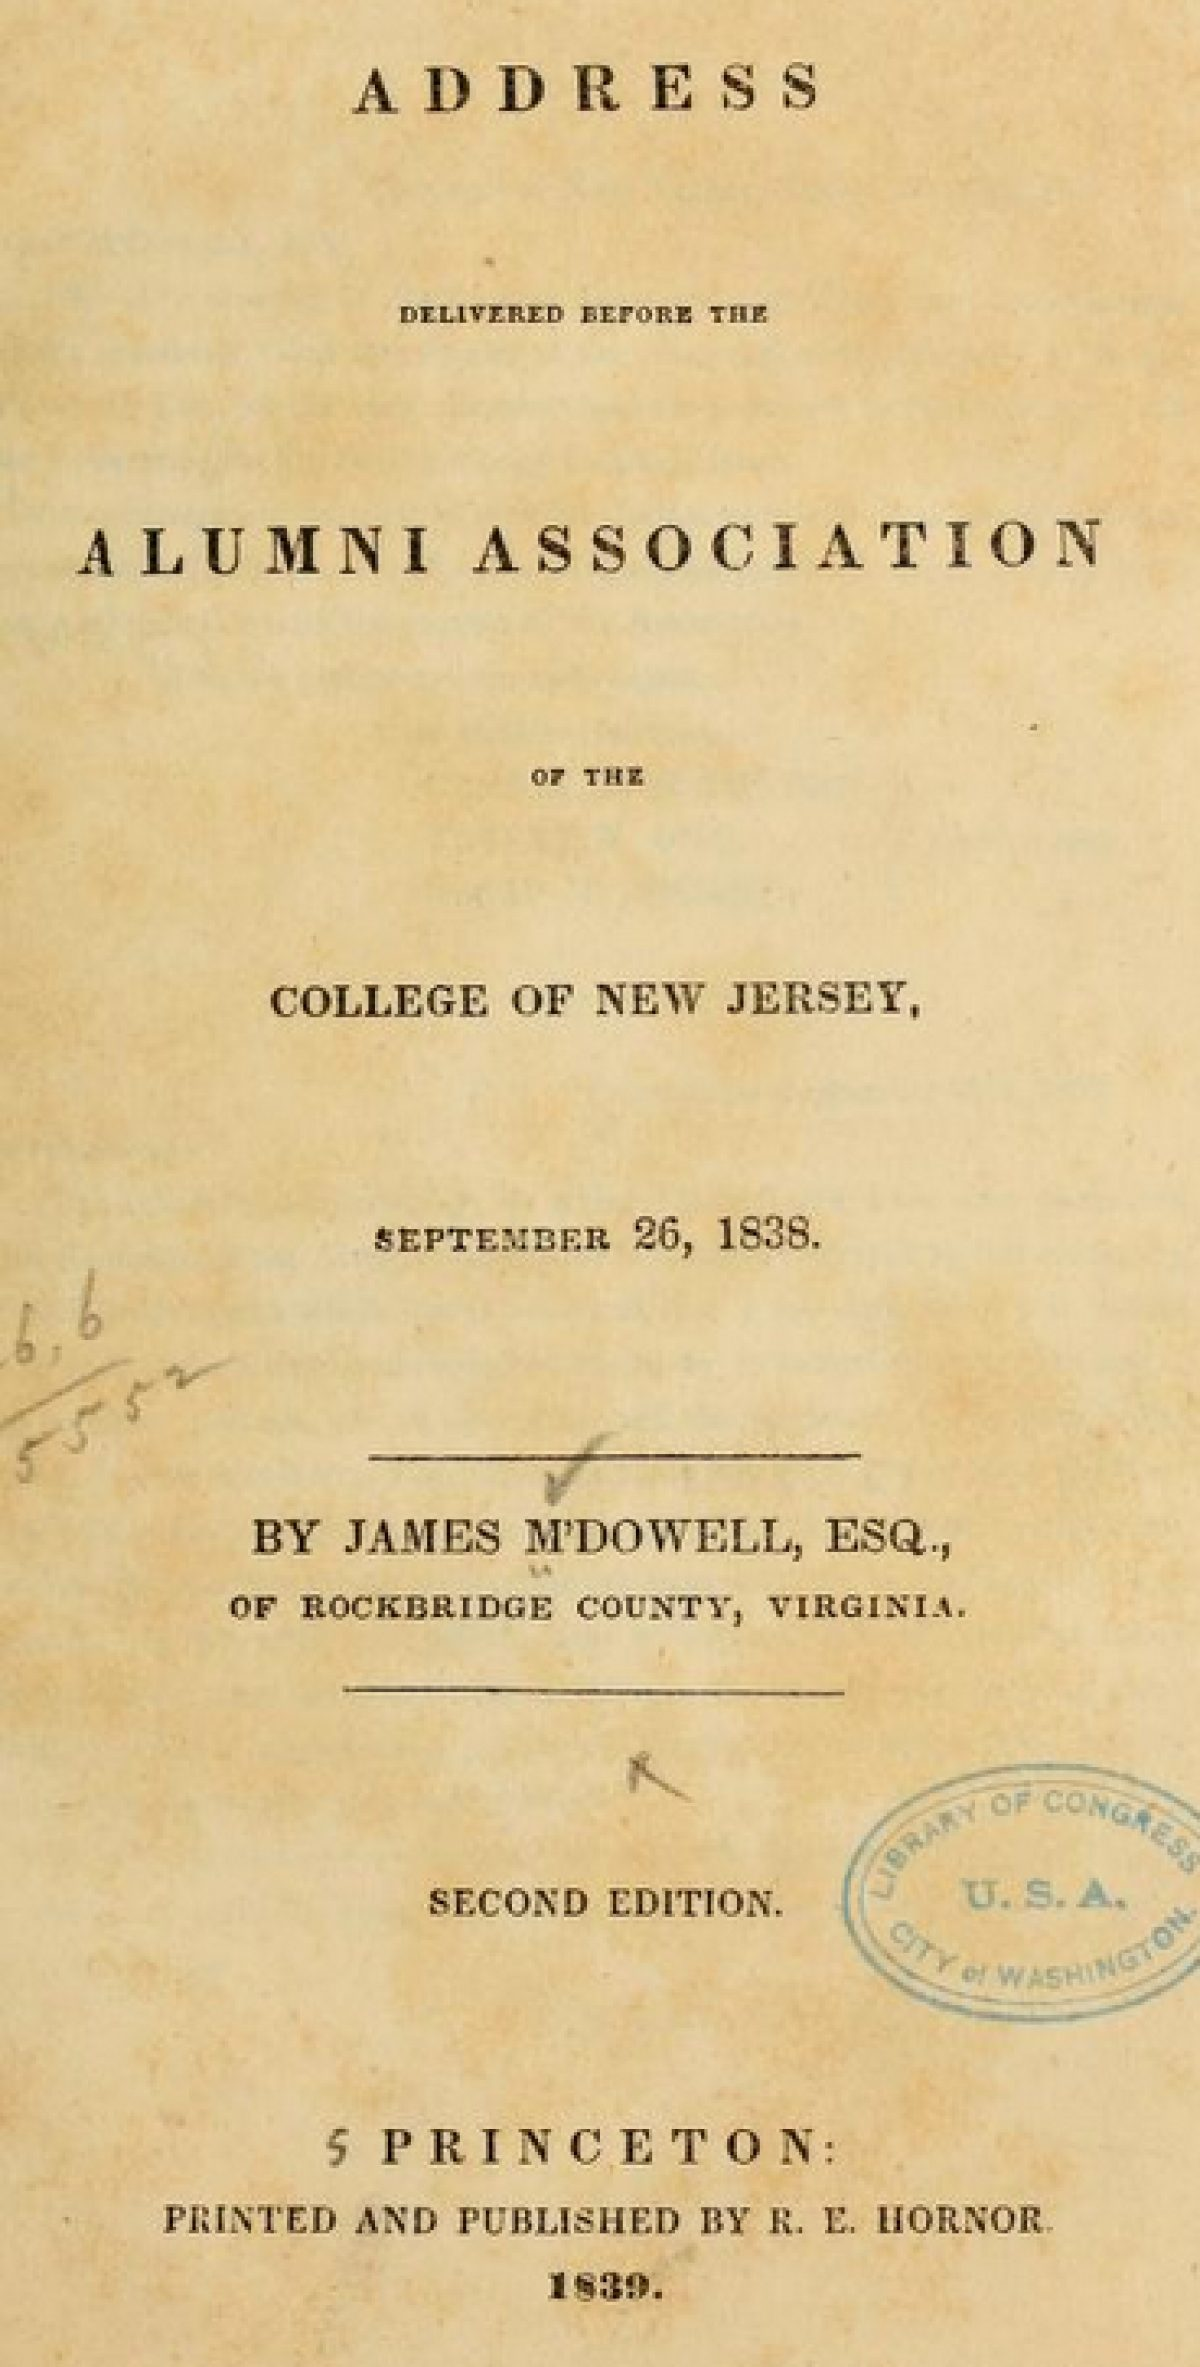 Mdowell Address Delivered Before The Alumni Association Of The College Of New Jersey